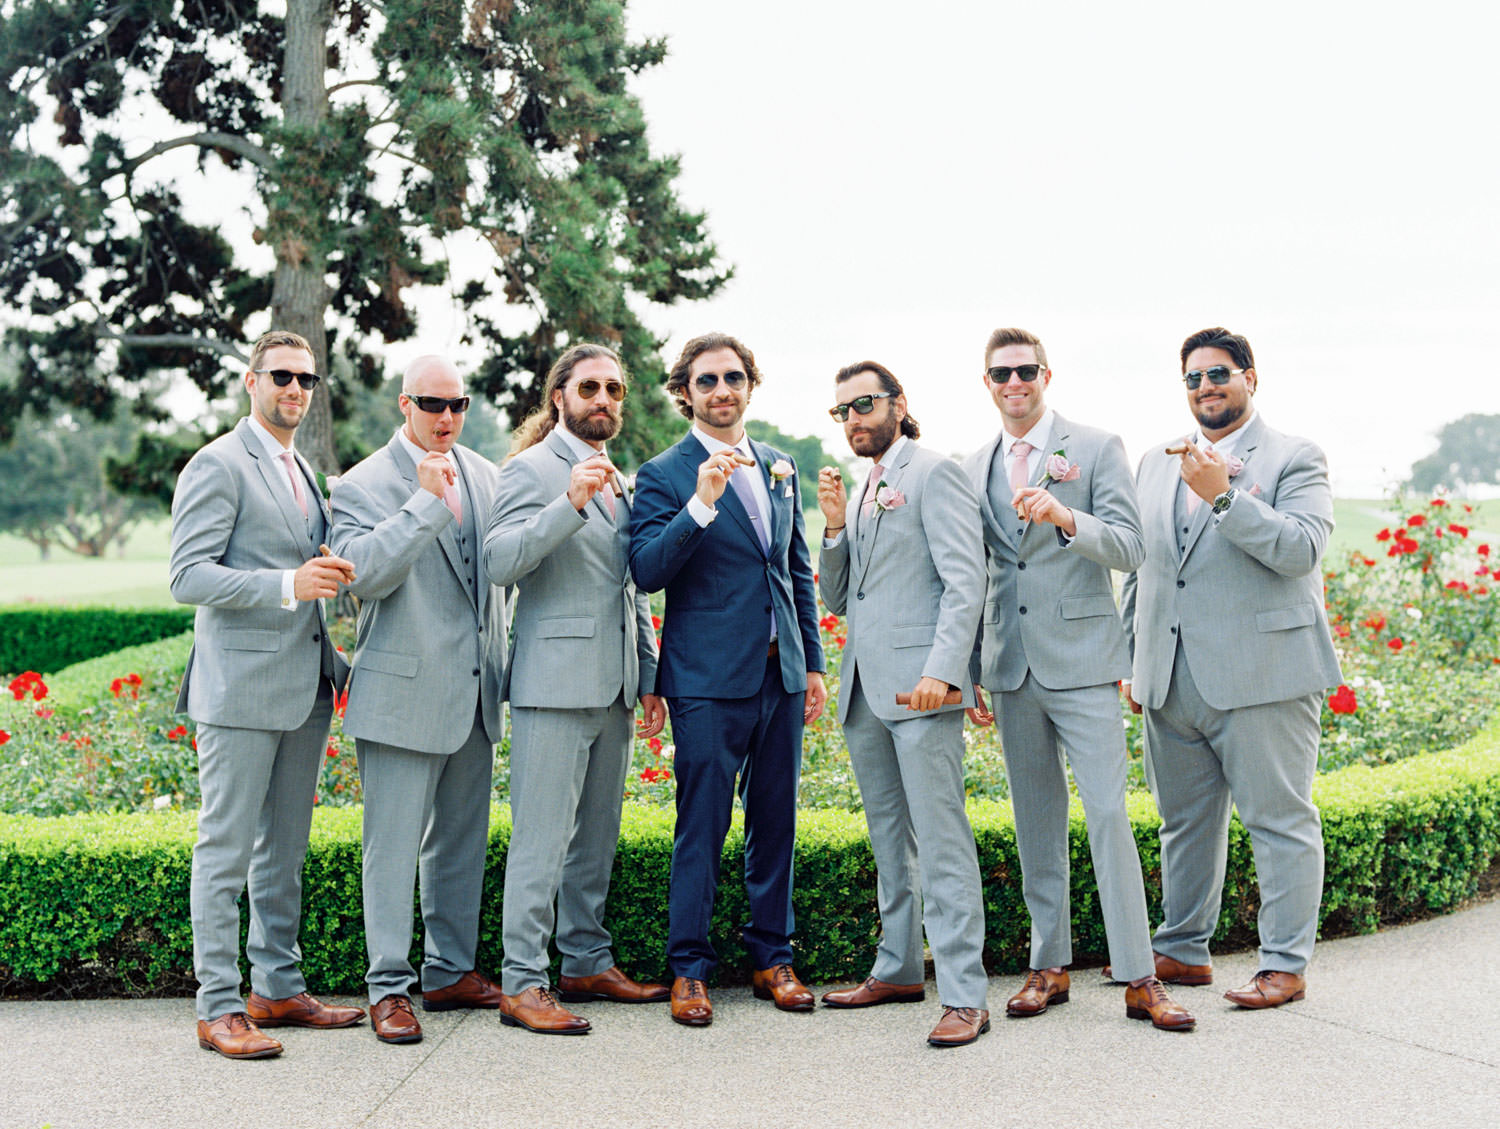 Groomsmen in light grey suits and groom in navy suit with cigars, Lodge at Torrey Pines wedding, film photography by Cavin Elizabeth Photography